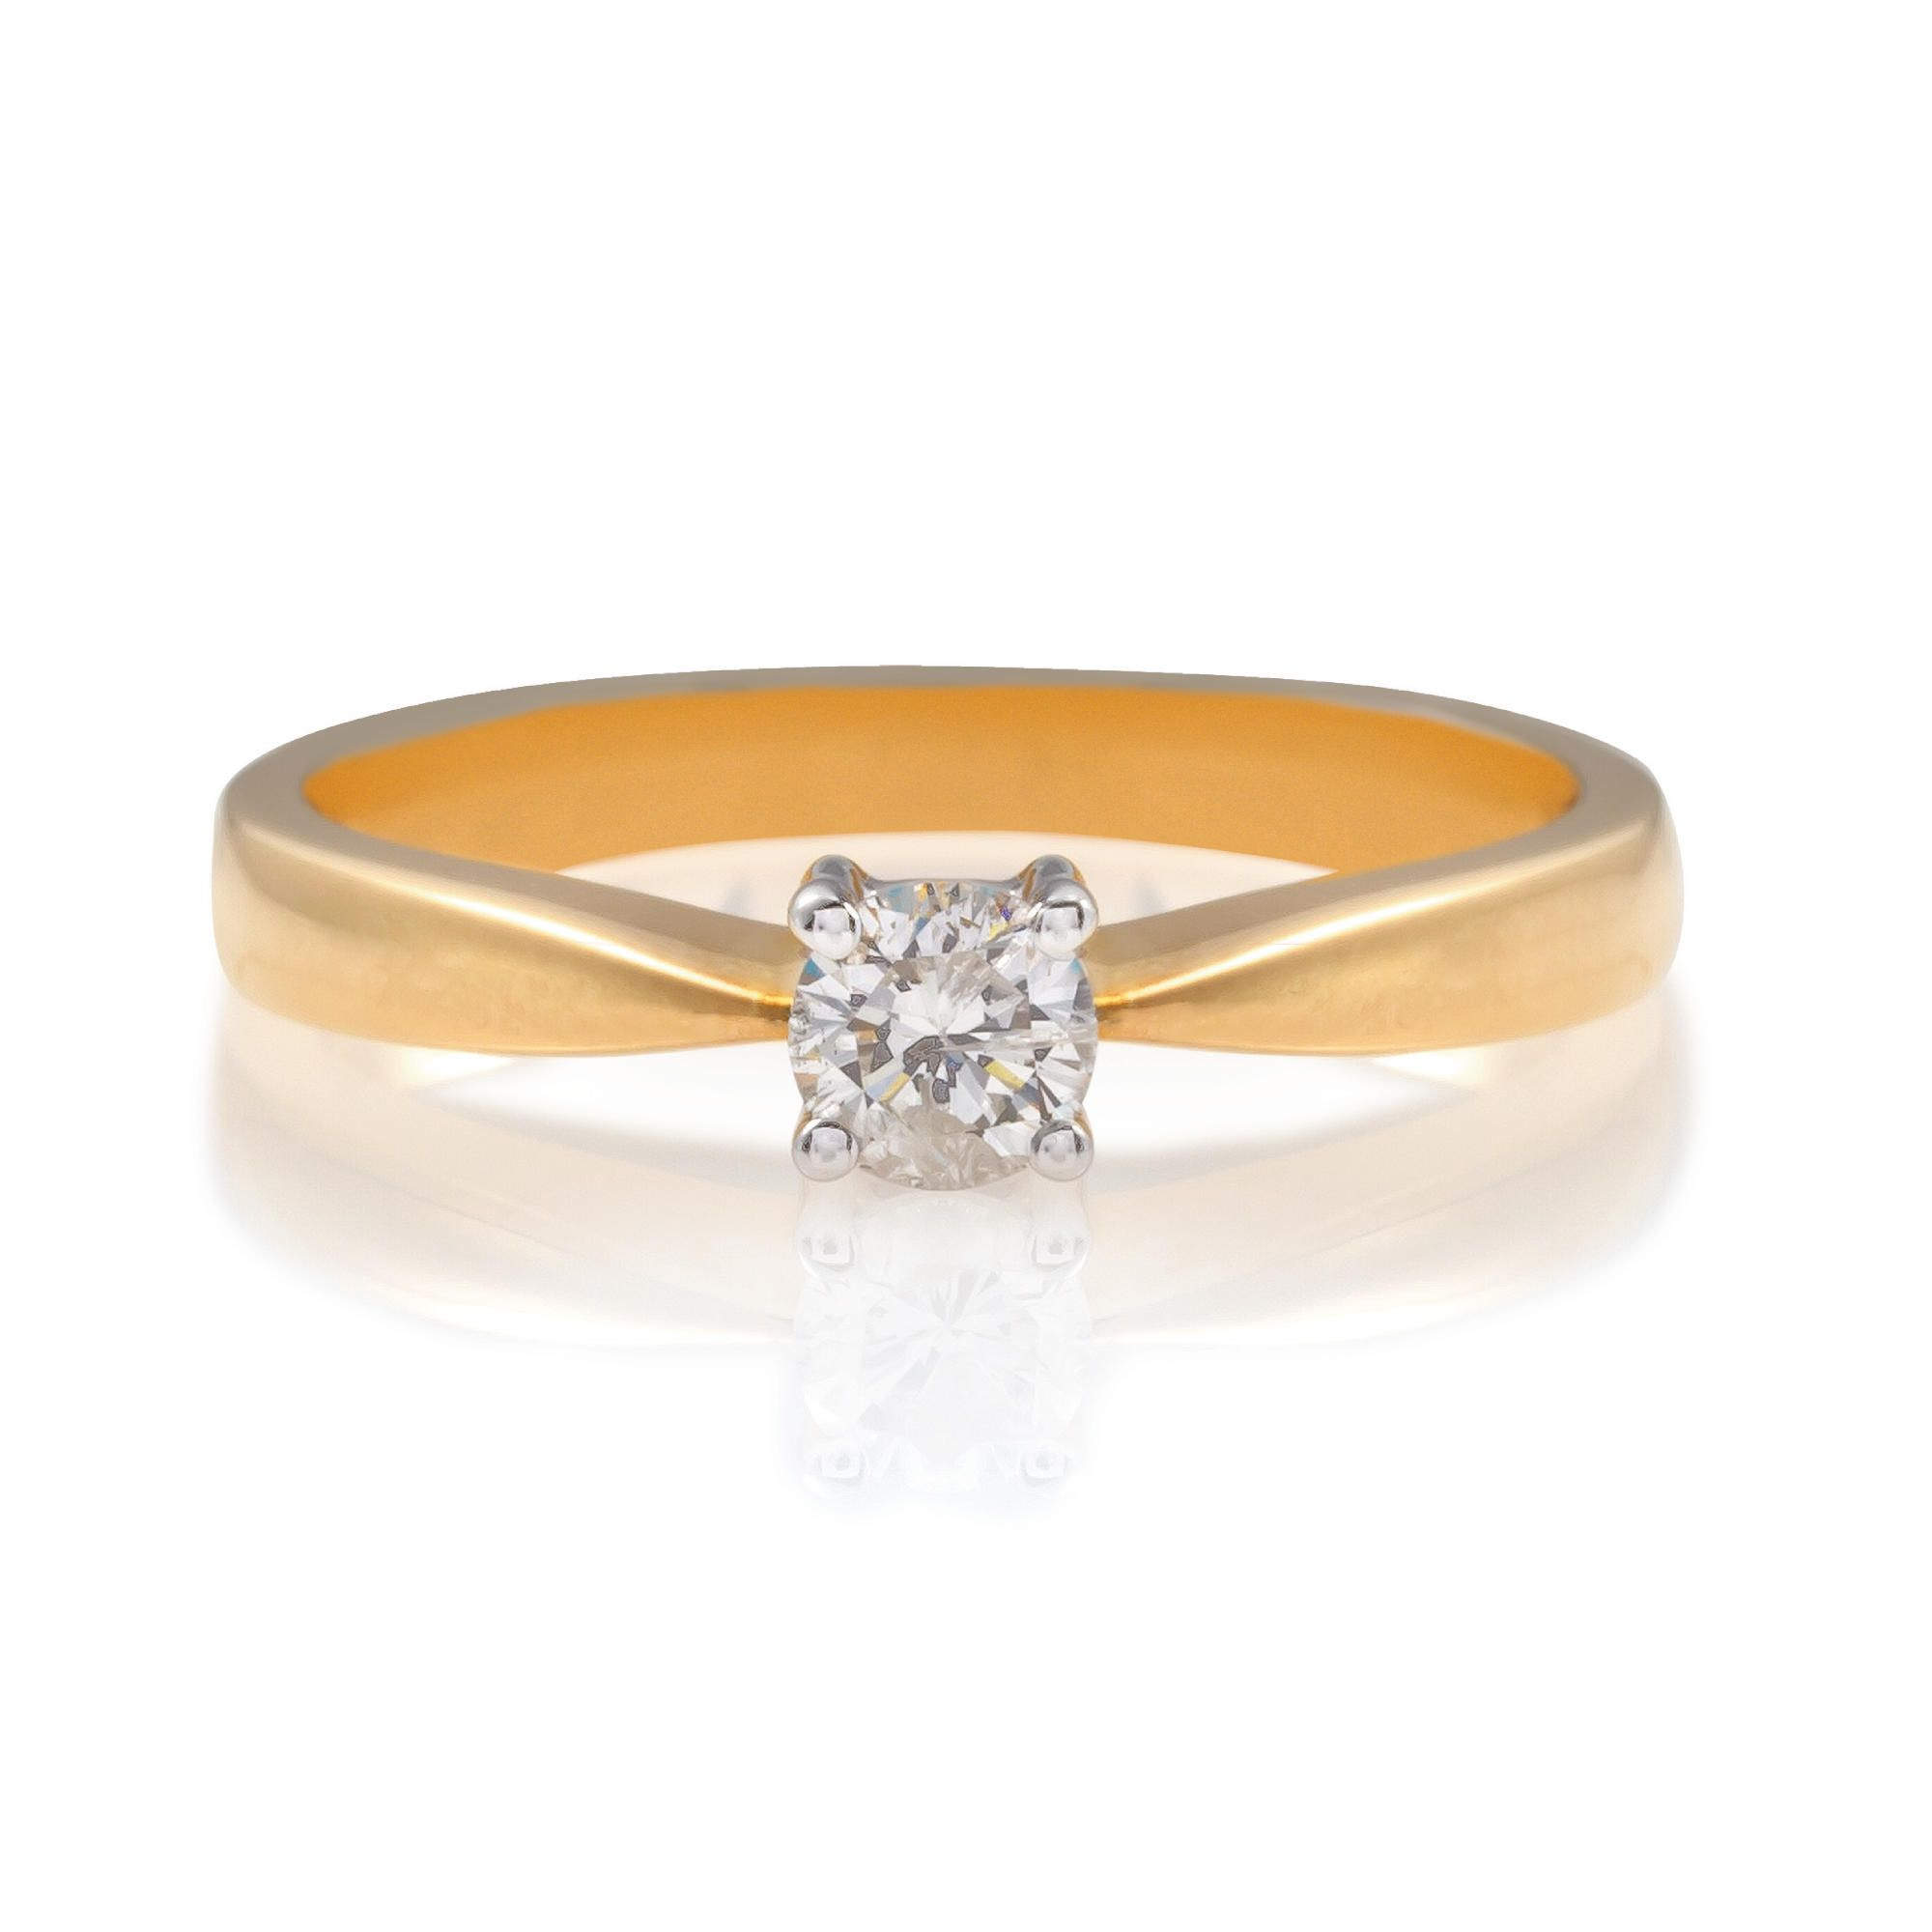 18ct Gold 25Pt Diamond Solitaire Ring, L at Tesco Direct